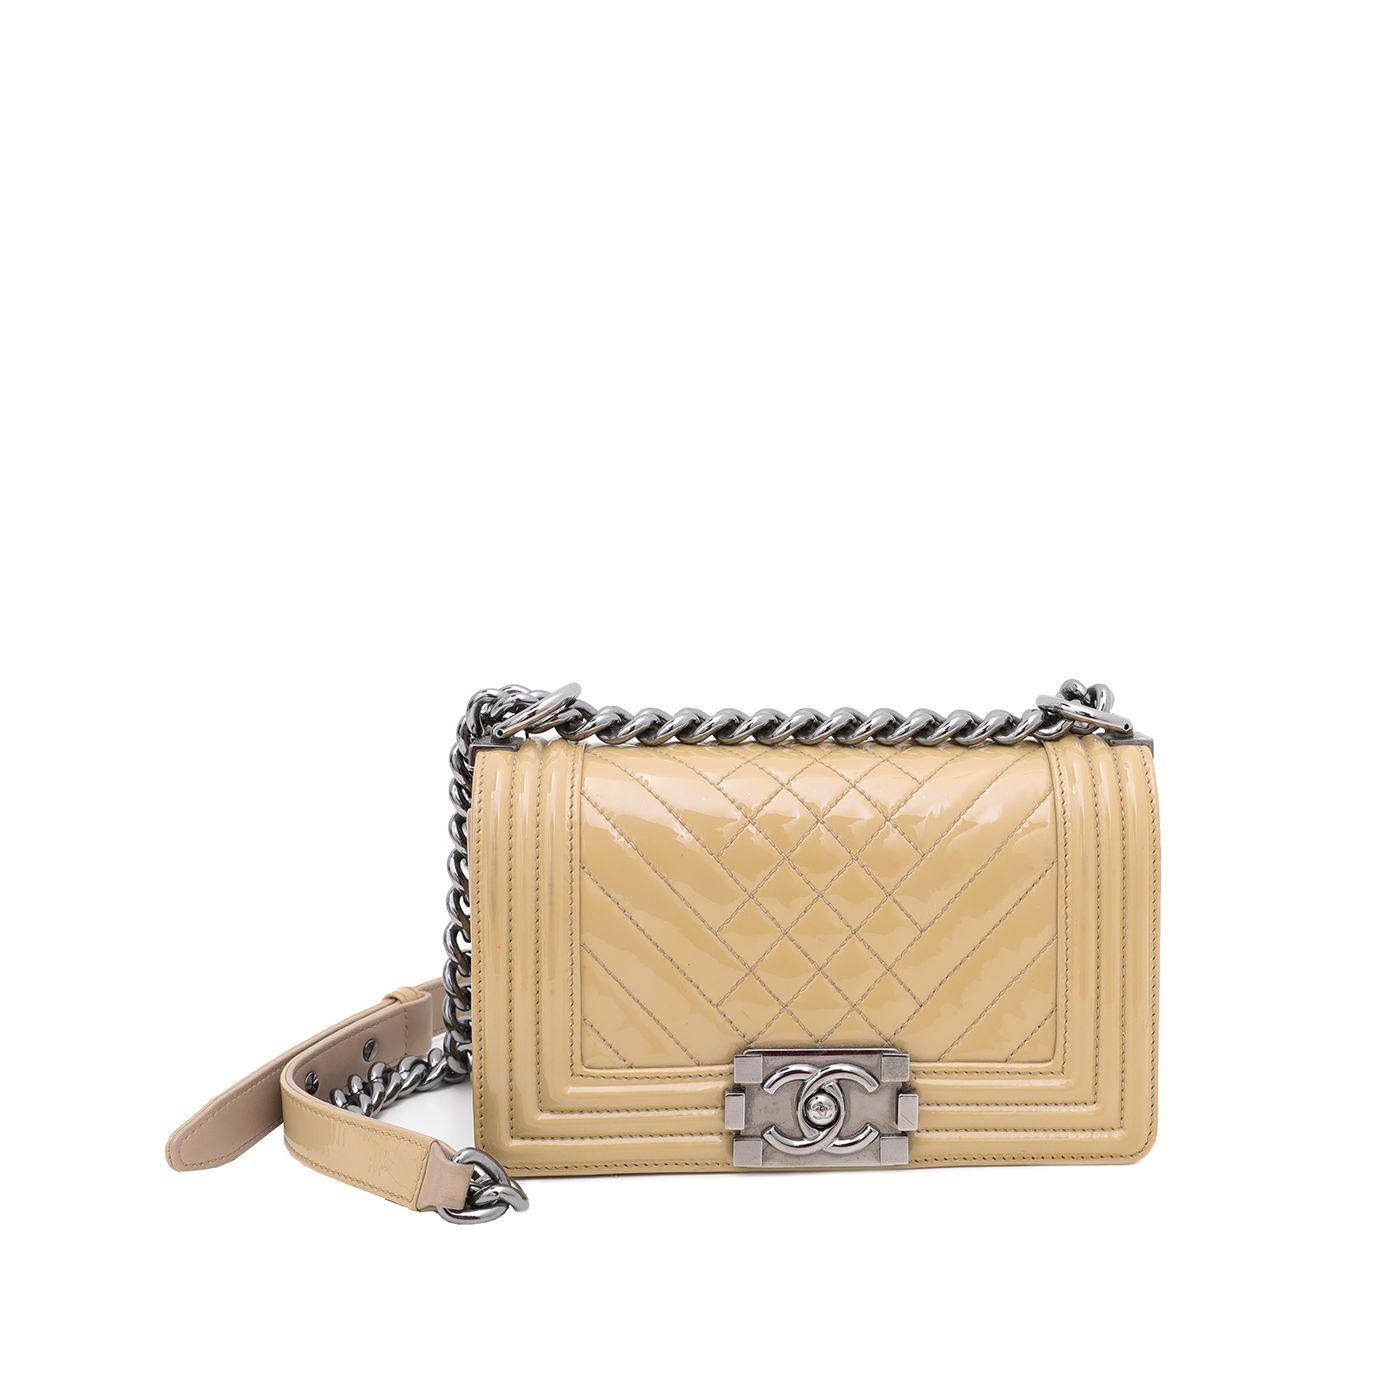 Chanel Beige Le Boy Mix Quilted Flap Small Bag